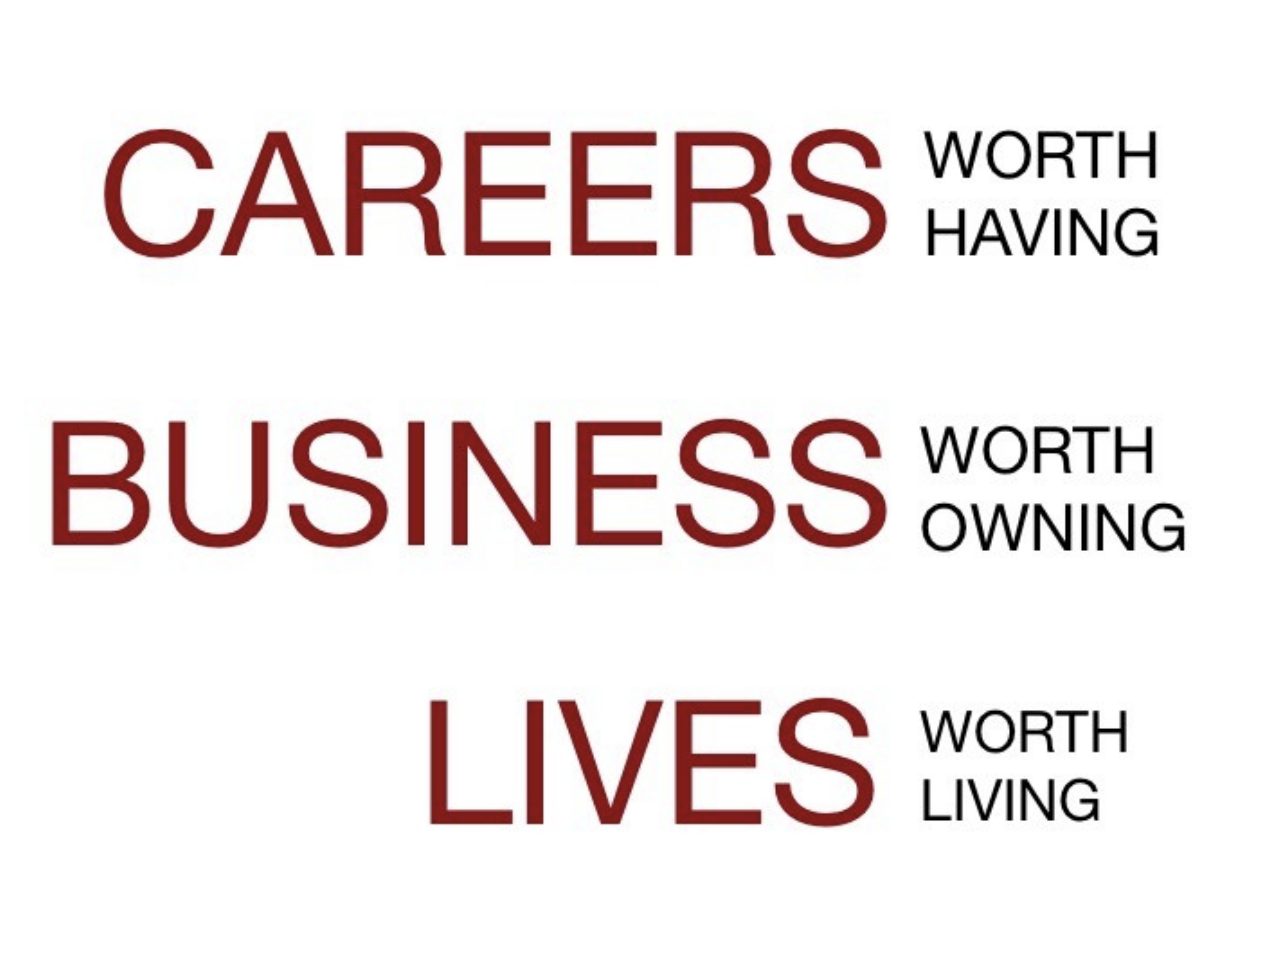 Careers, Business, Lives